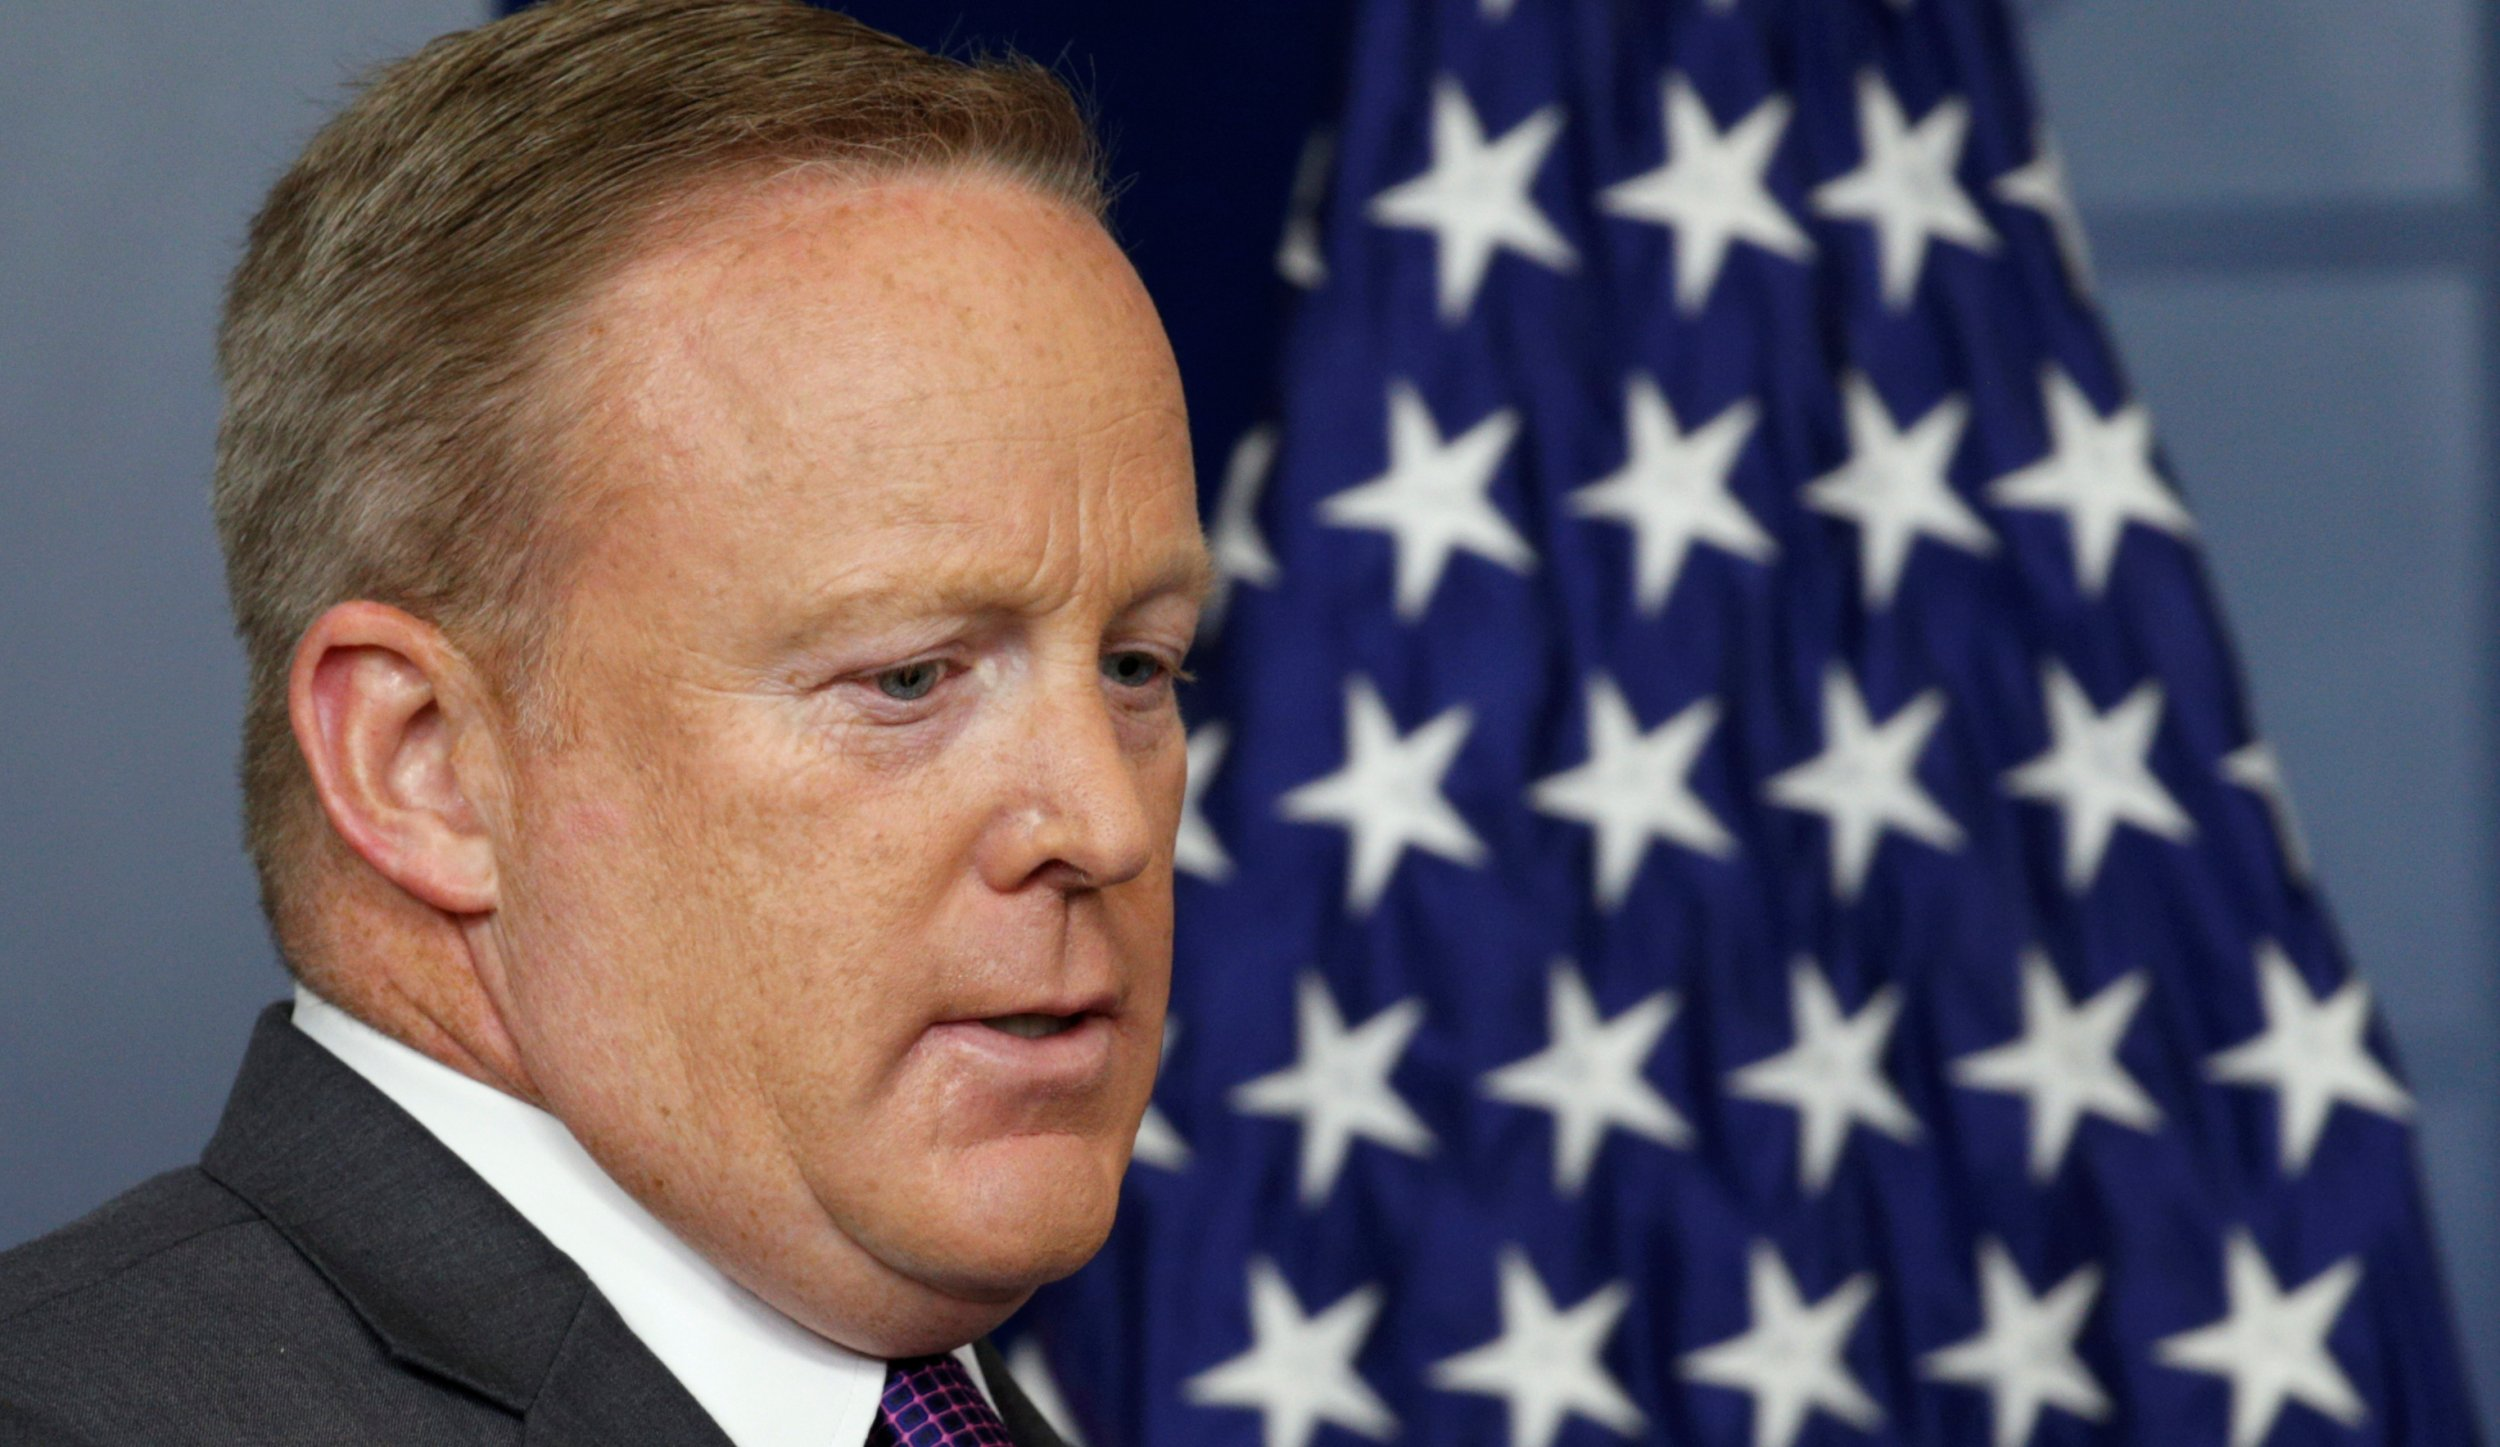 Sean Spicer resigned—here are five of his worst moments in the White House